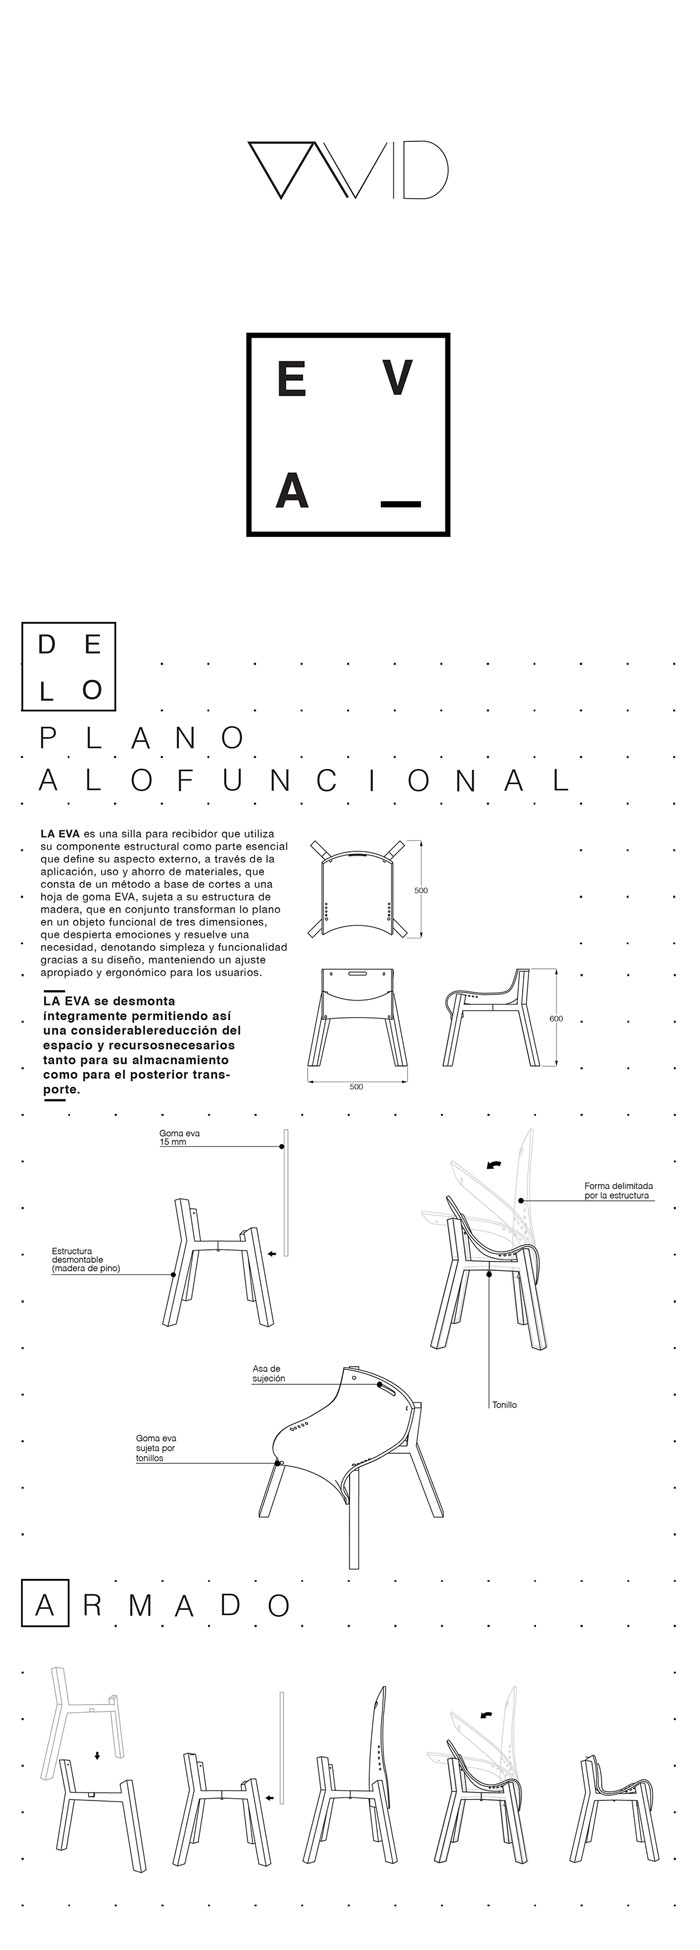 Chair design plan of the La Eva chair - unique and beautiful furniture design from San Luis Potosi, Mexico.